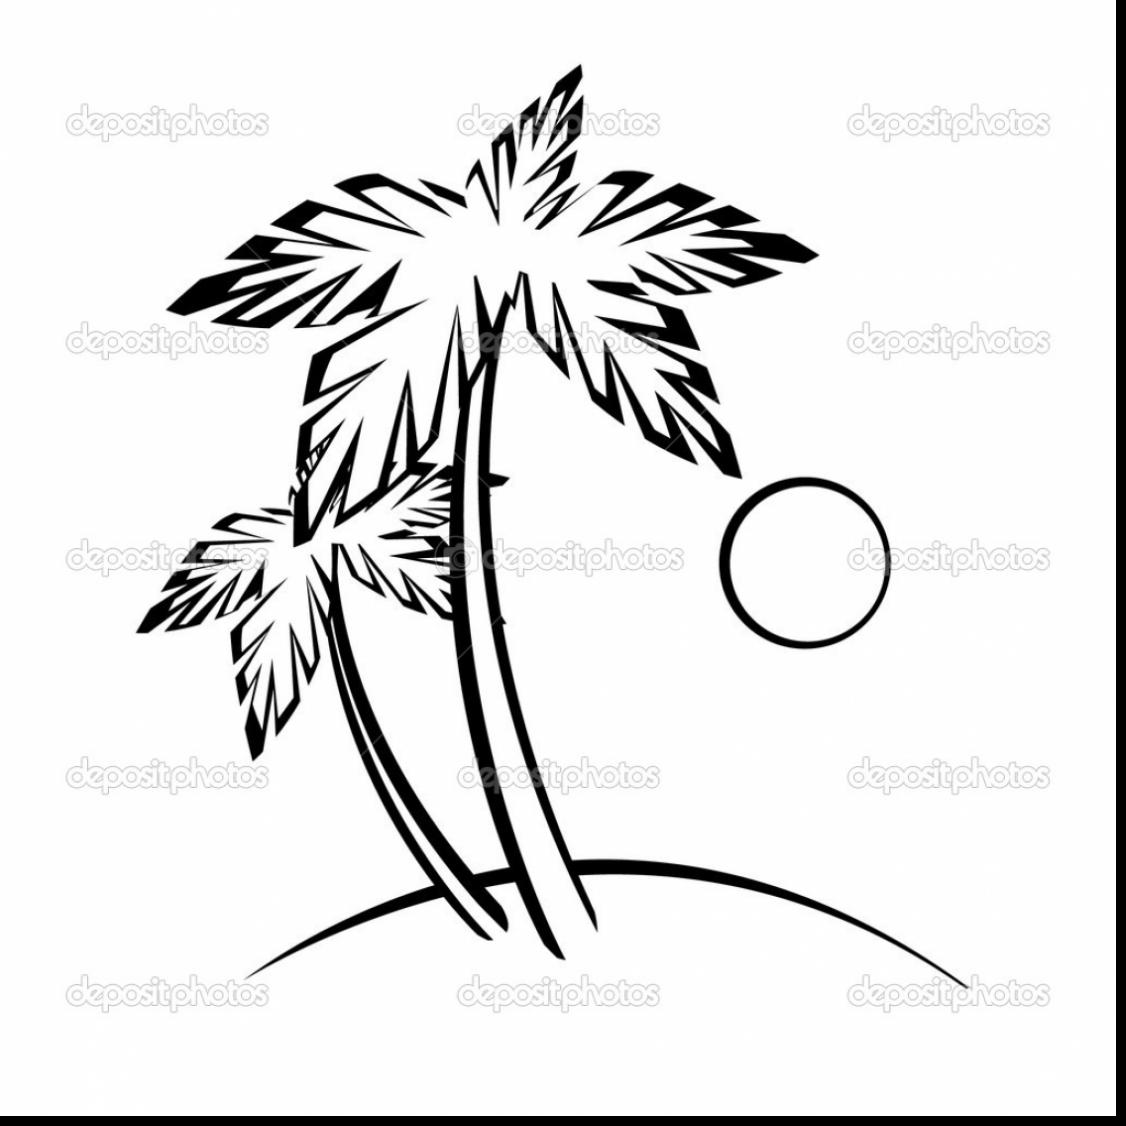 Coconut Palm Tree Drawing at GetDrawings.com | Free for personal use ...